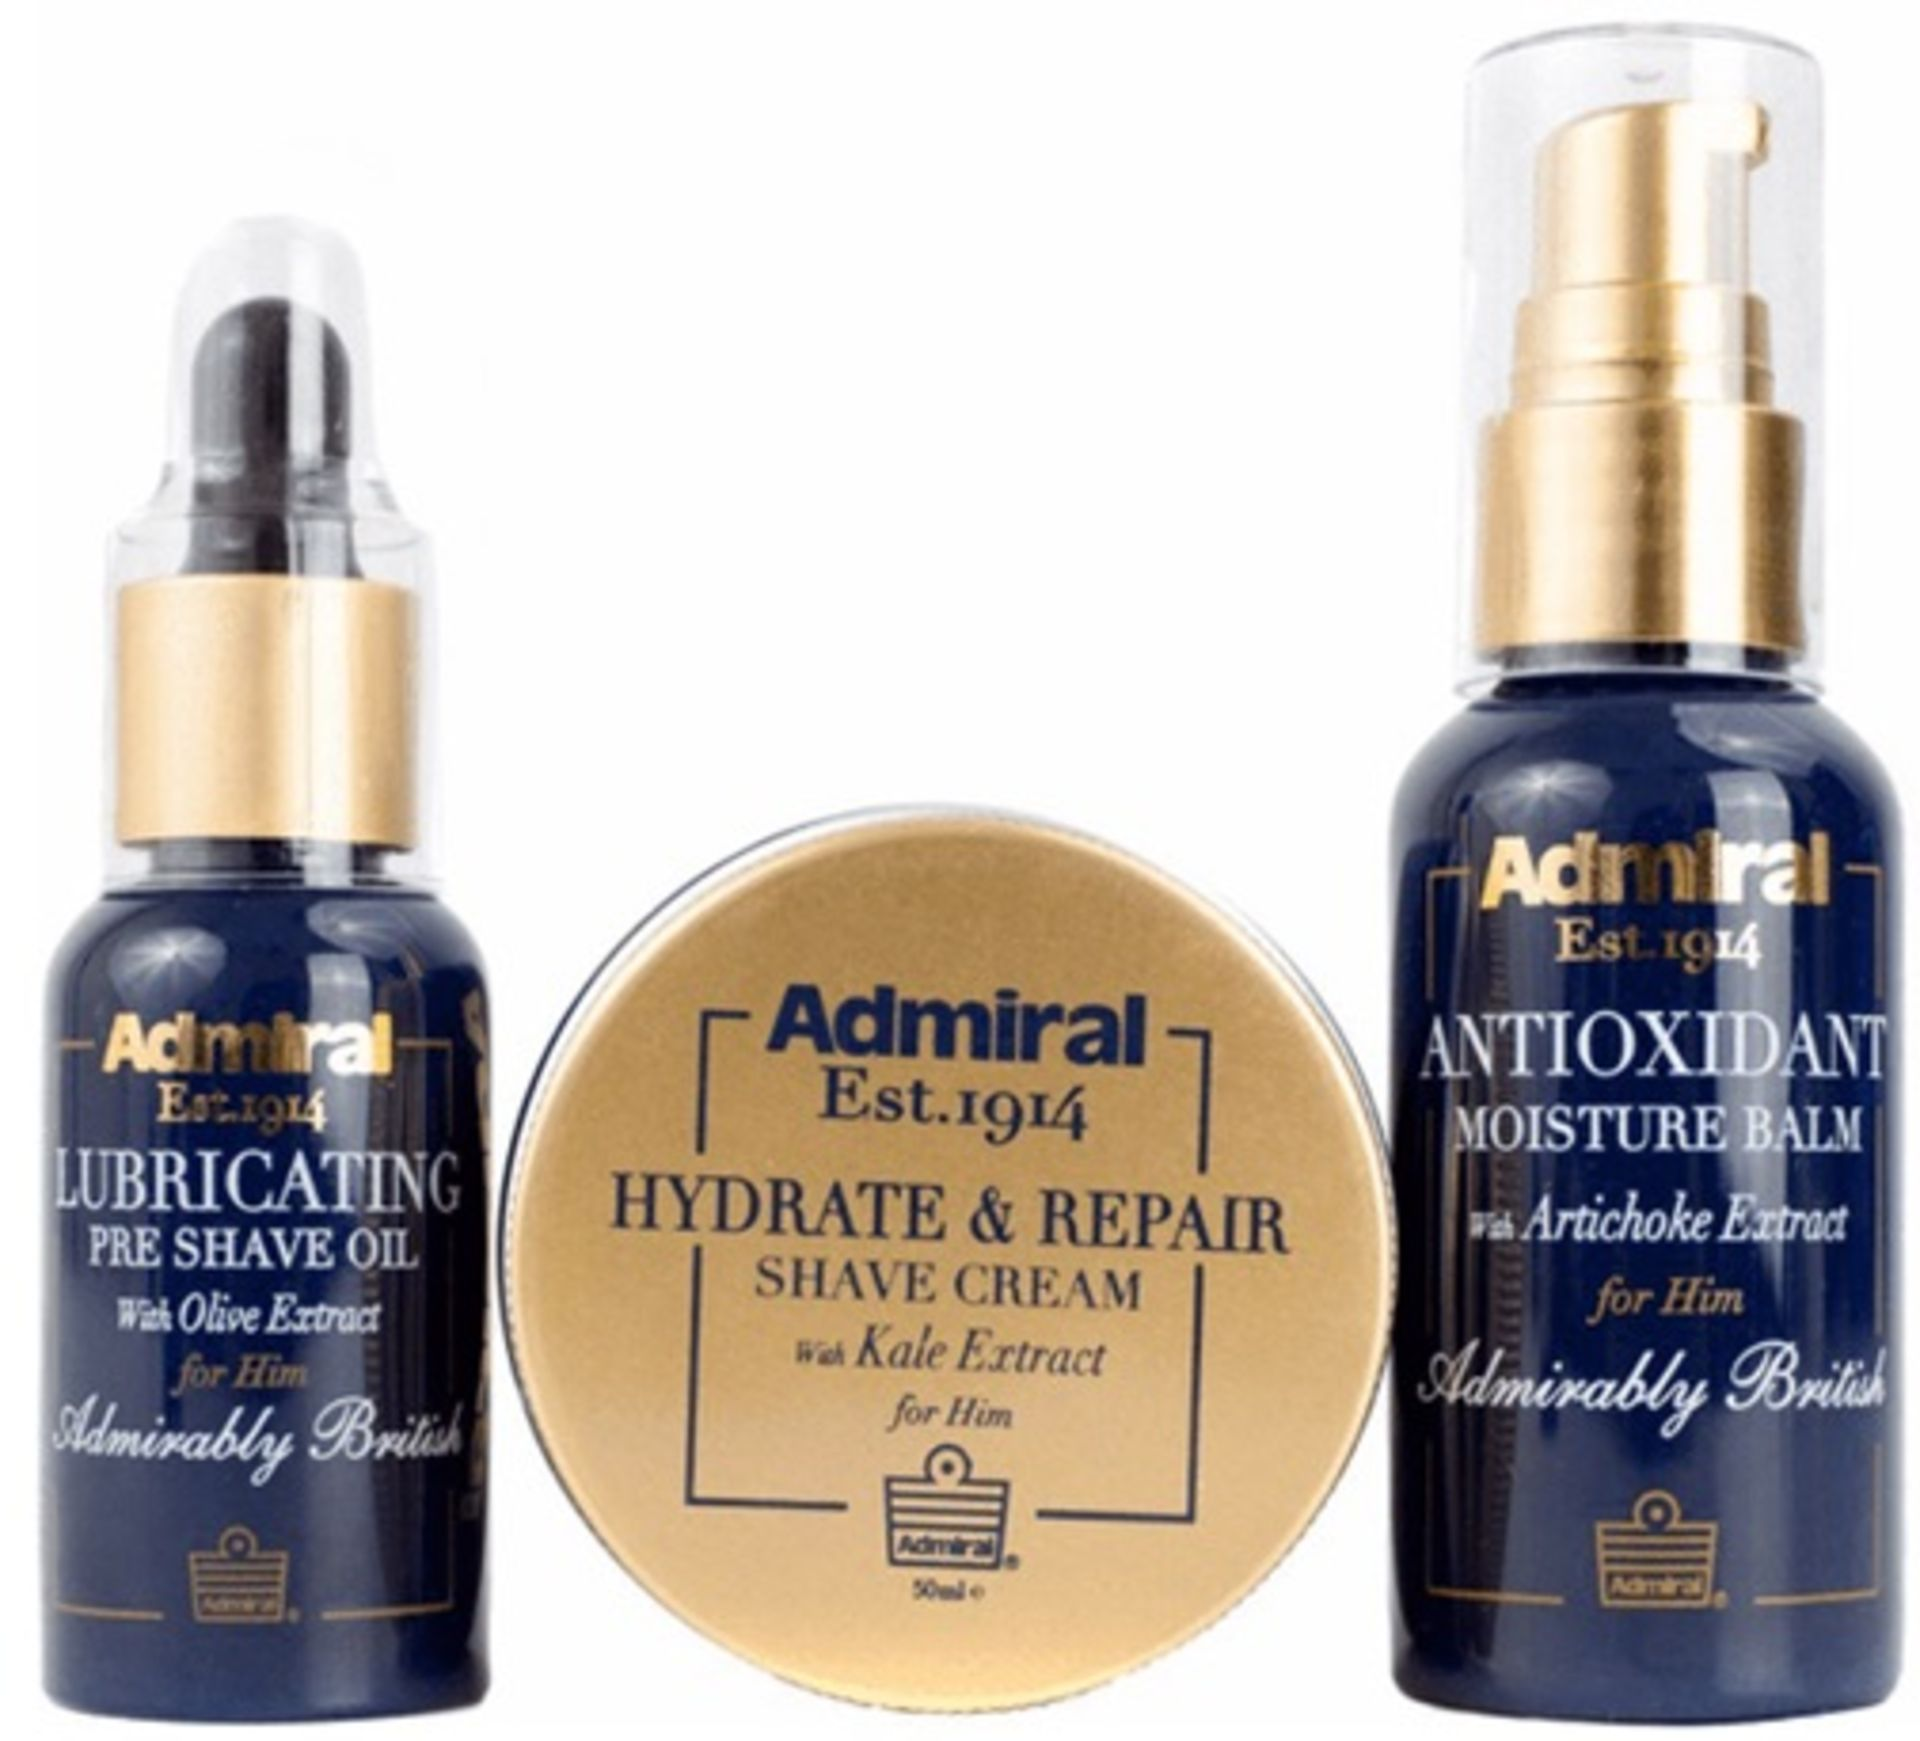 100 x Admiral Clean Shave Set | Total RRP £2,500 - Image 2 of 2